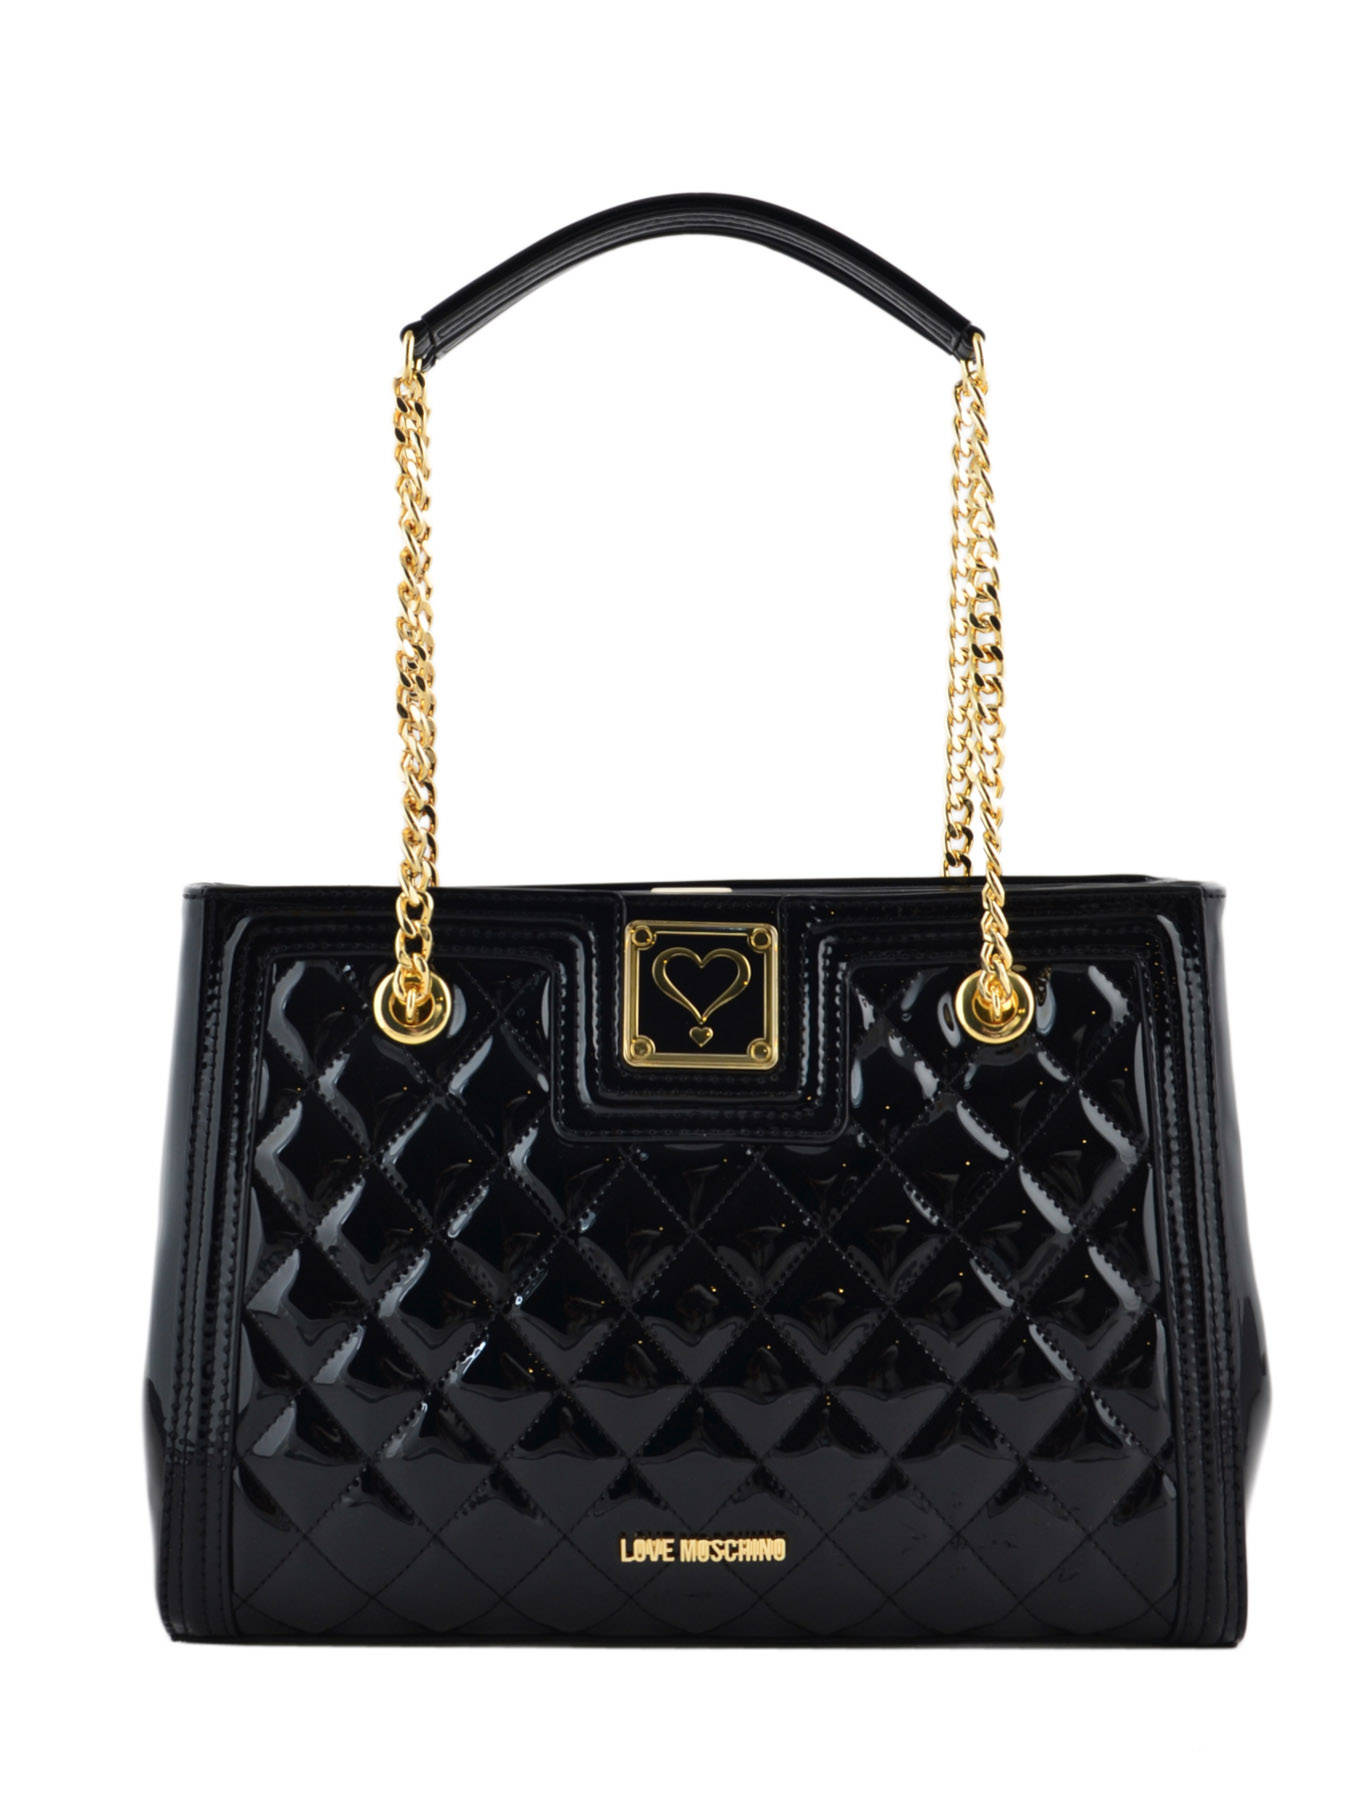 Sac Shopping Patent Quilted Verni Love moschino Noir patent quilted JC4021PP